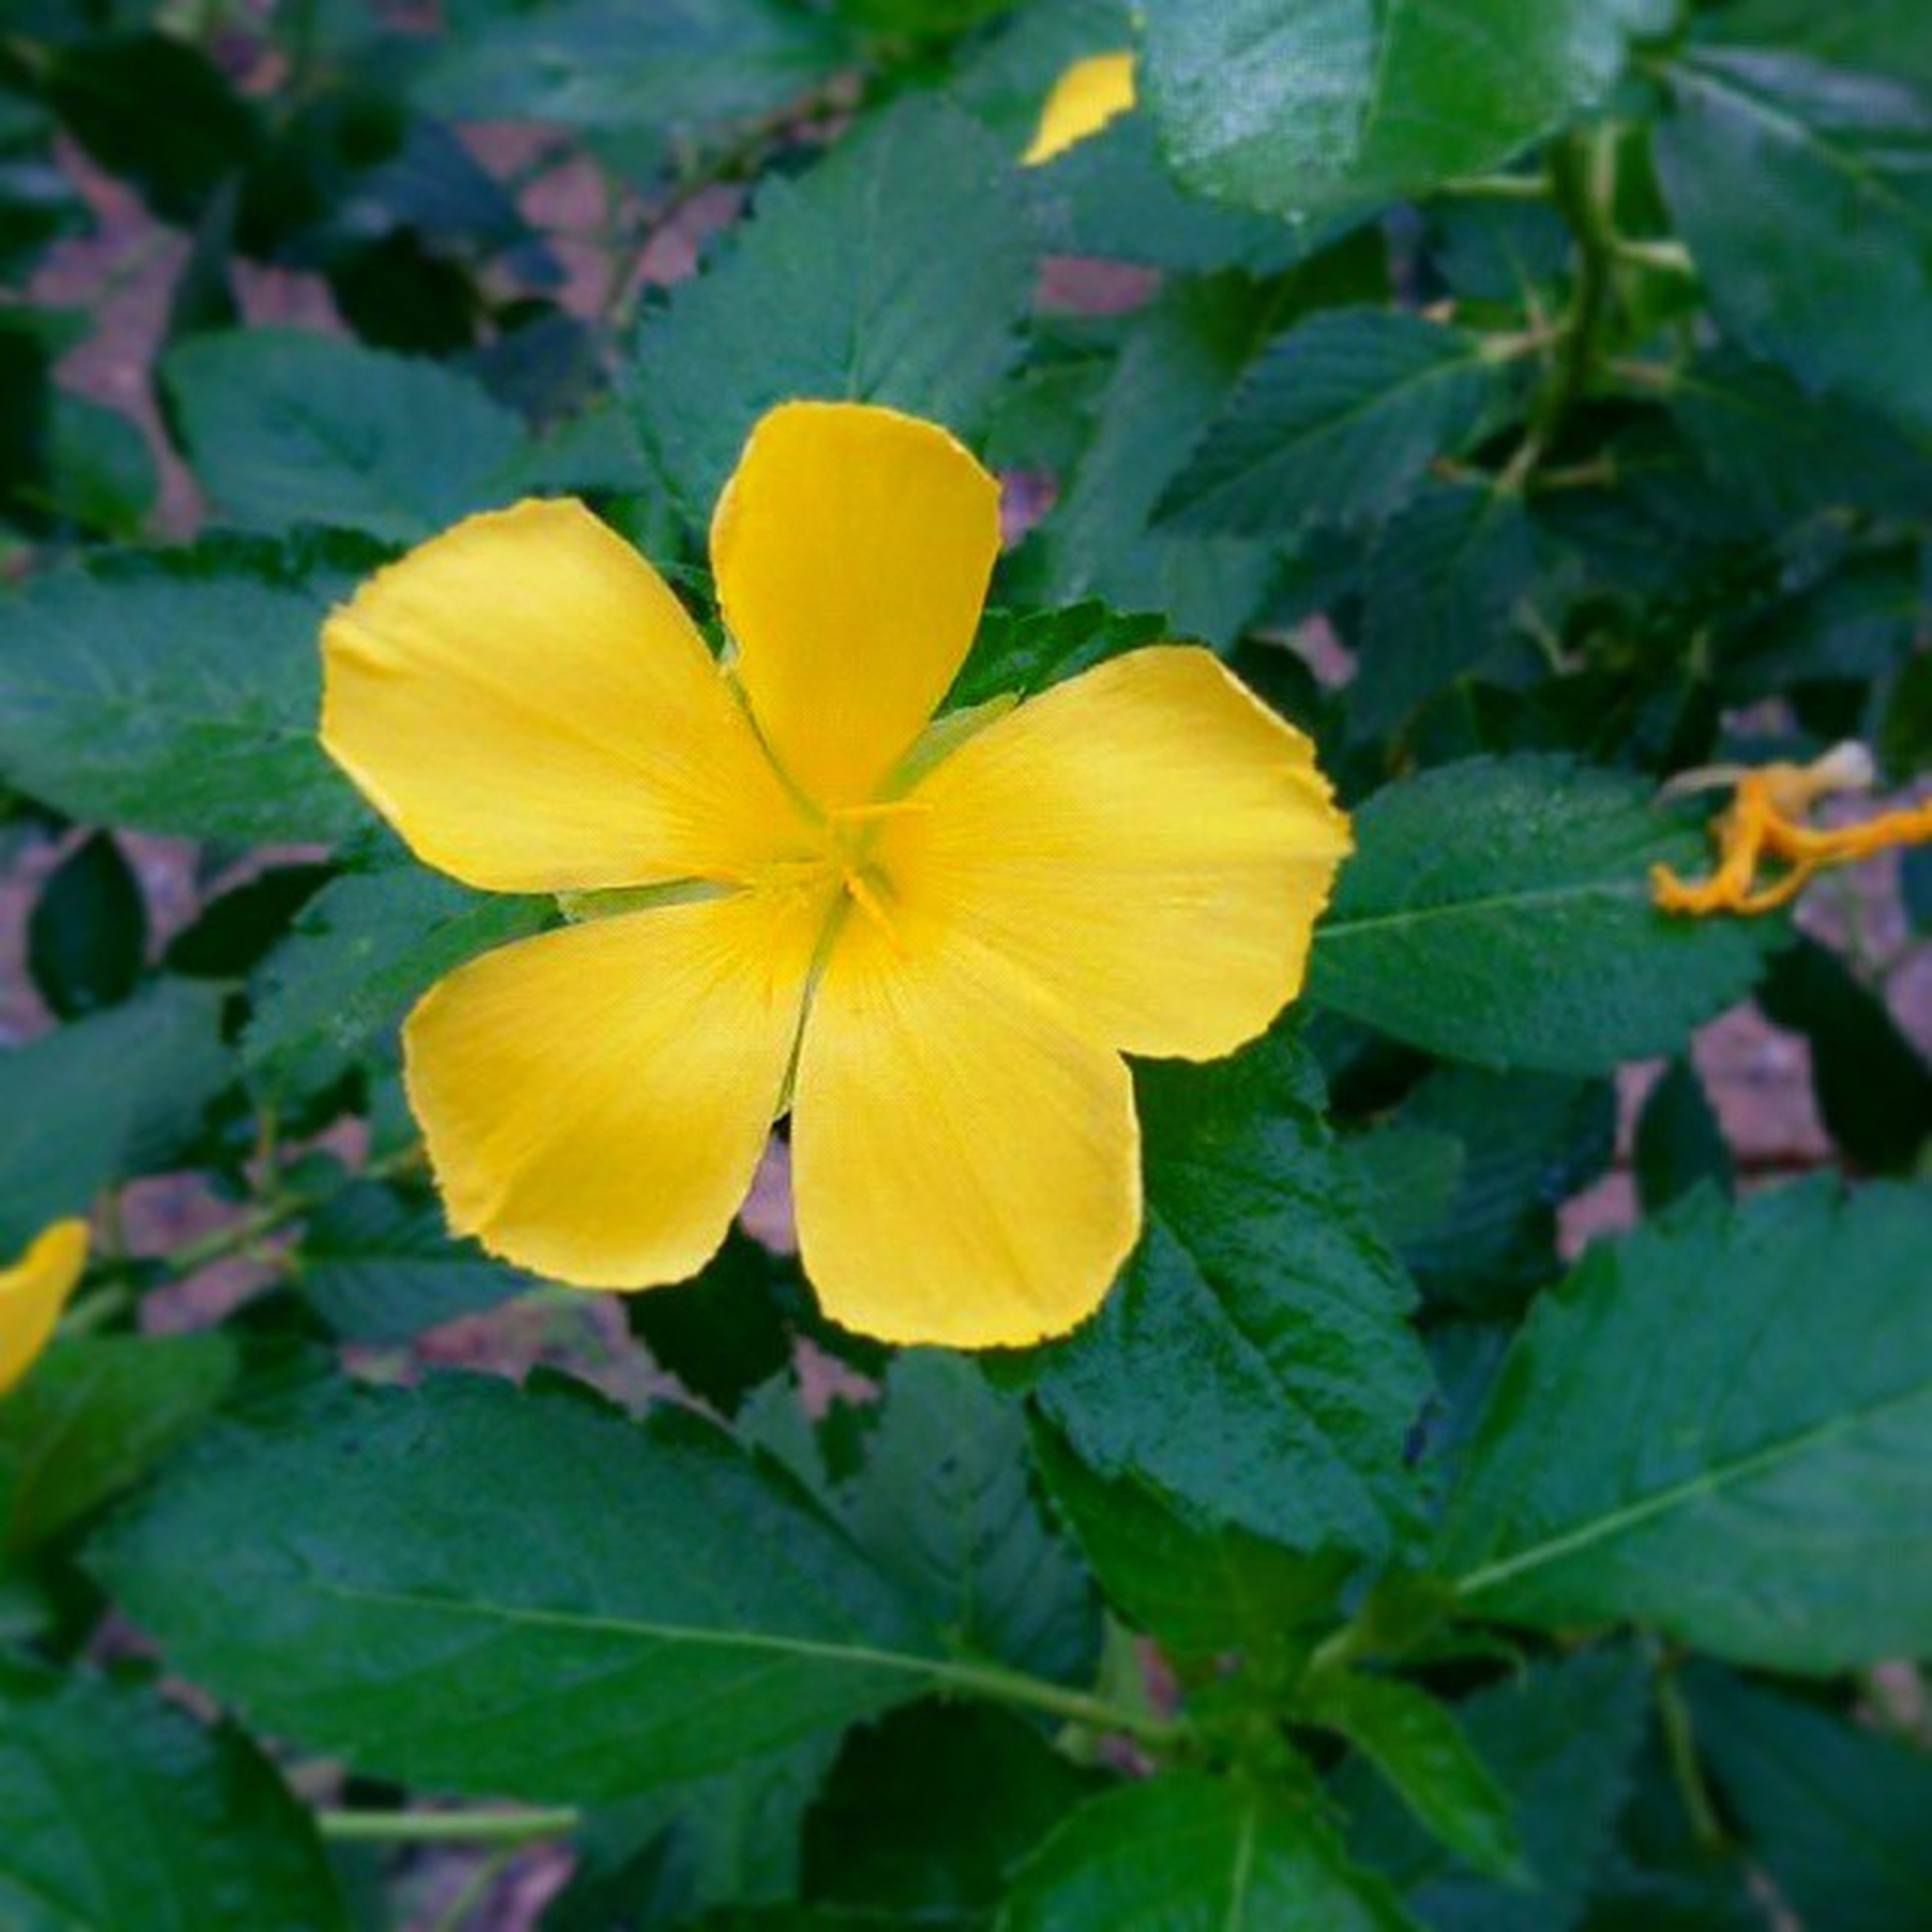 flower, petal, freshness, fragility, flower head, growth, leaf, beauty in nature, yellow, close-up, blooming, nature, plant, focus on foreground, single flower, stamen, in bloom, high angle view, pollen, park - man made space